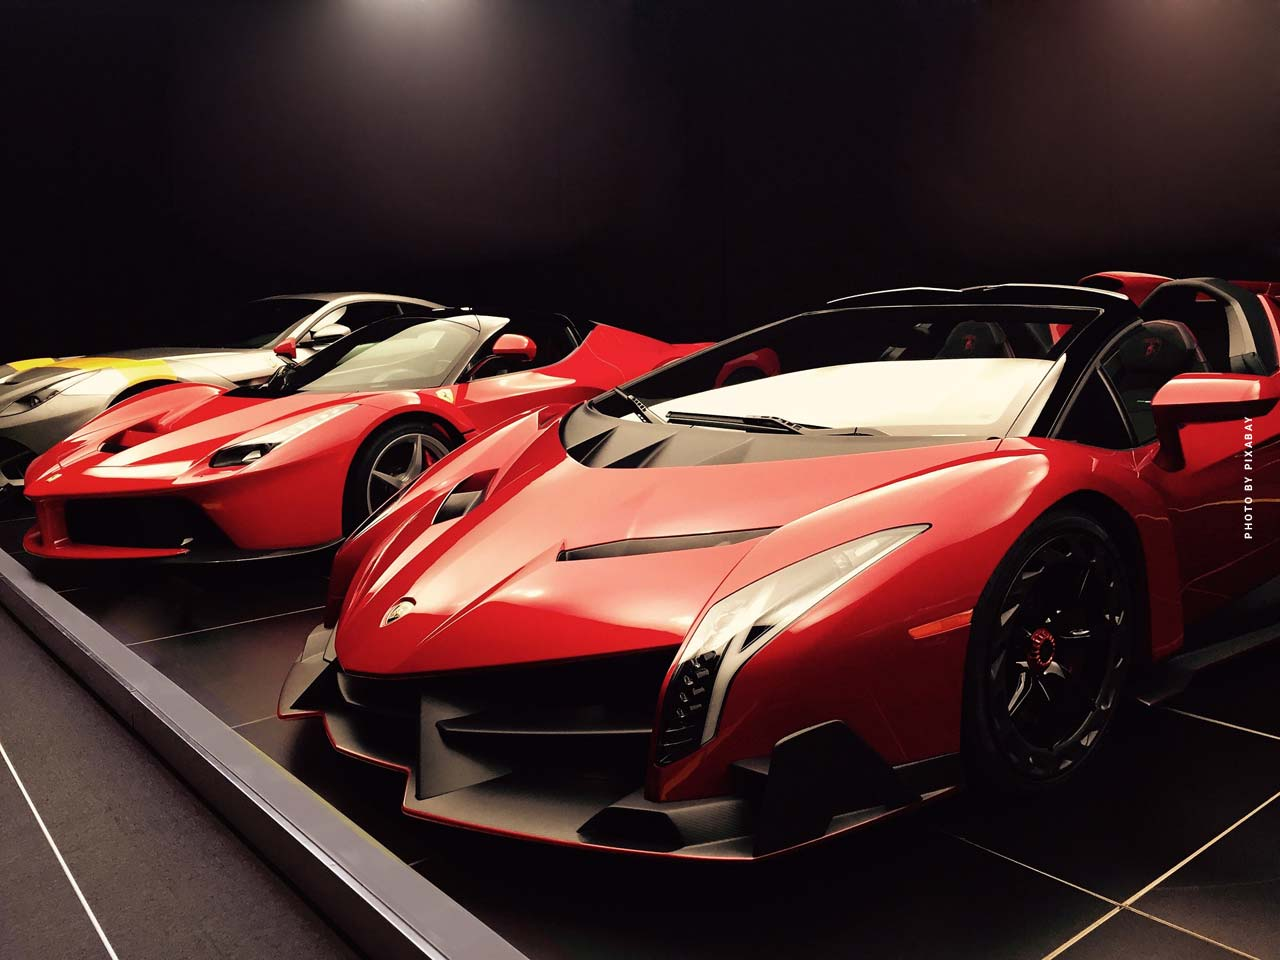 Buy Ferrari as a capital investment: The most expensive Ferrari models